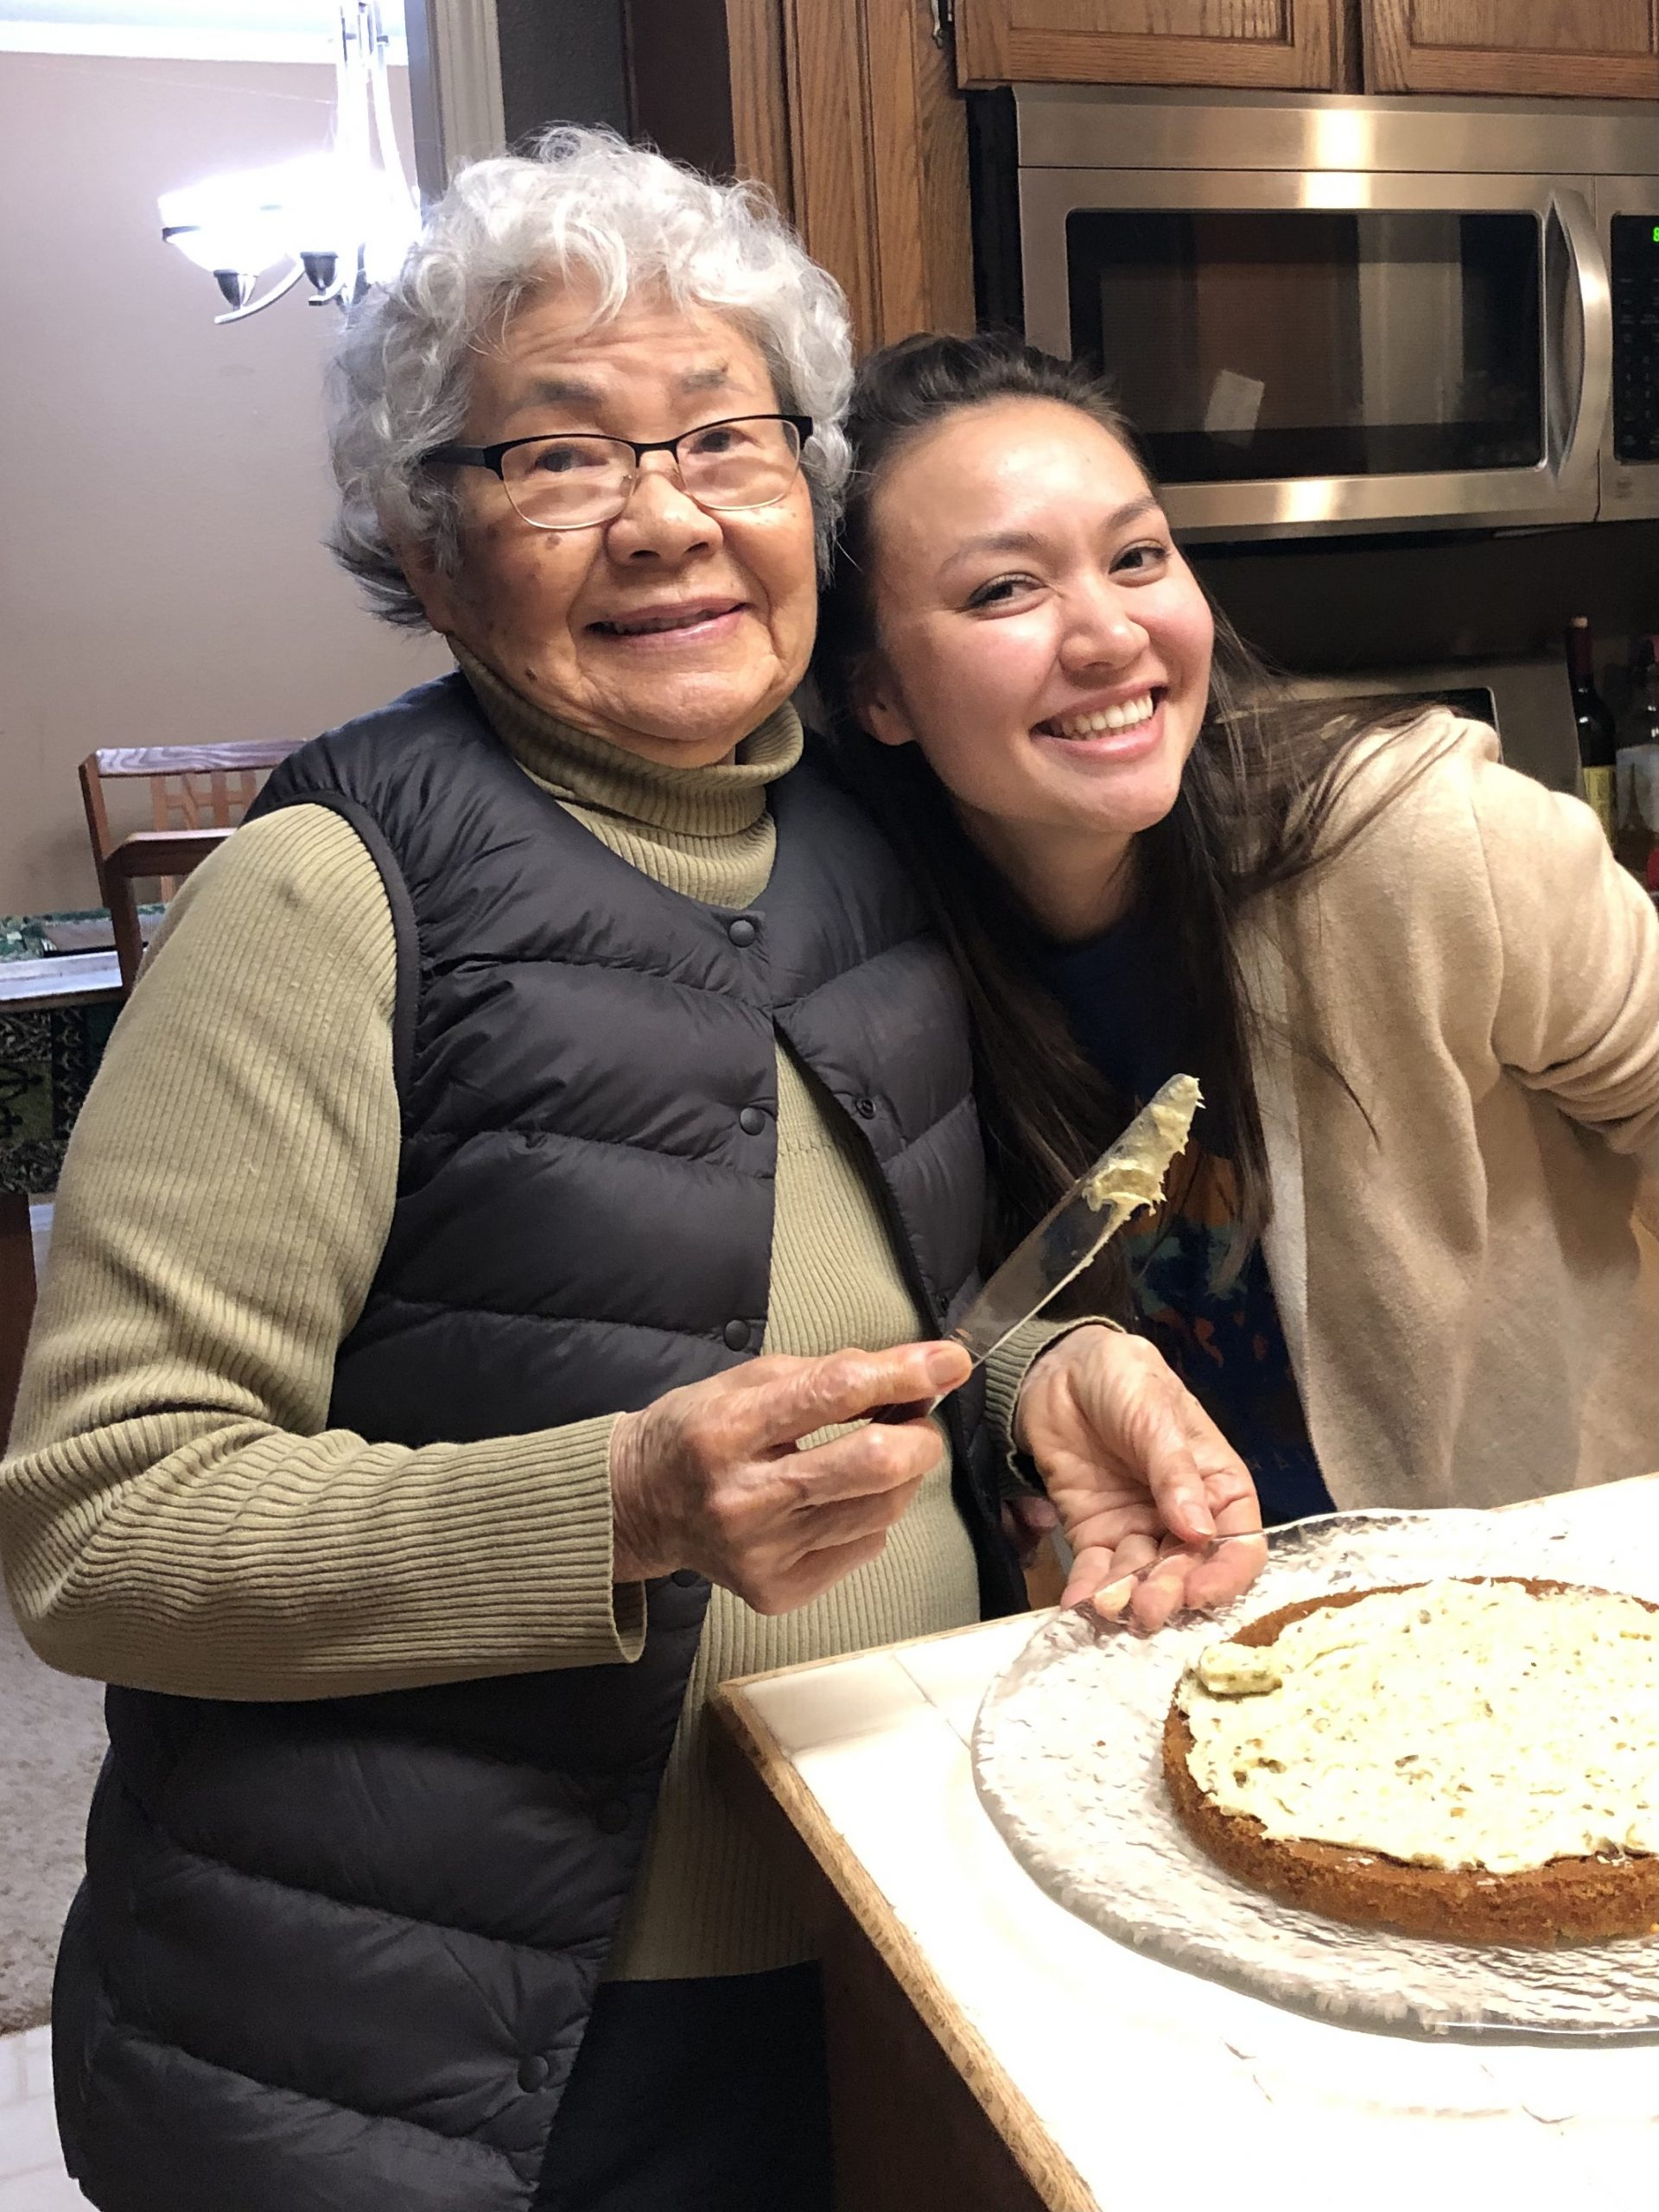 Annalise poses with her grandmother, an Asian woman with short, curly grey hair and glasses. They are making a cake together.